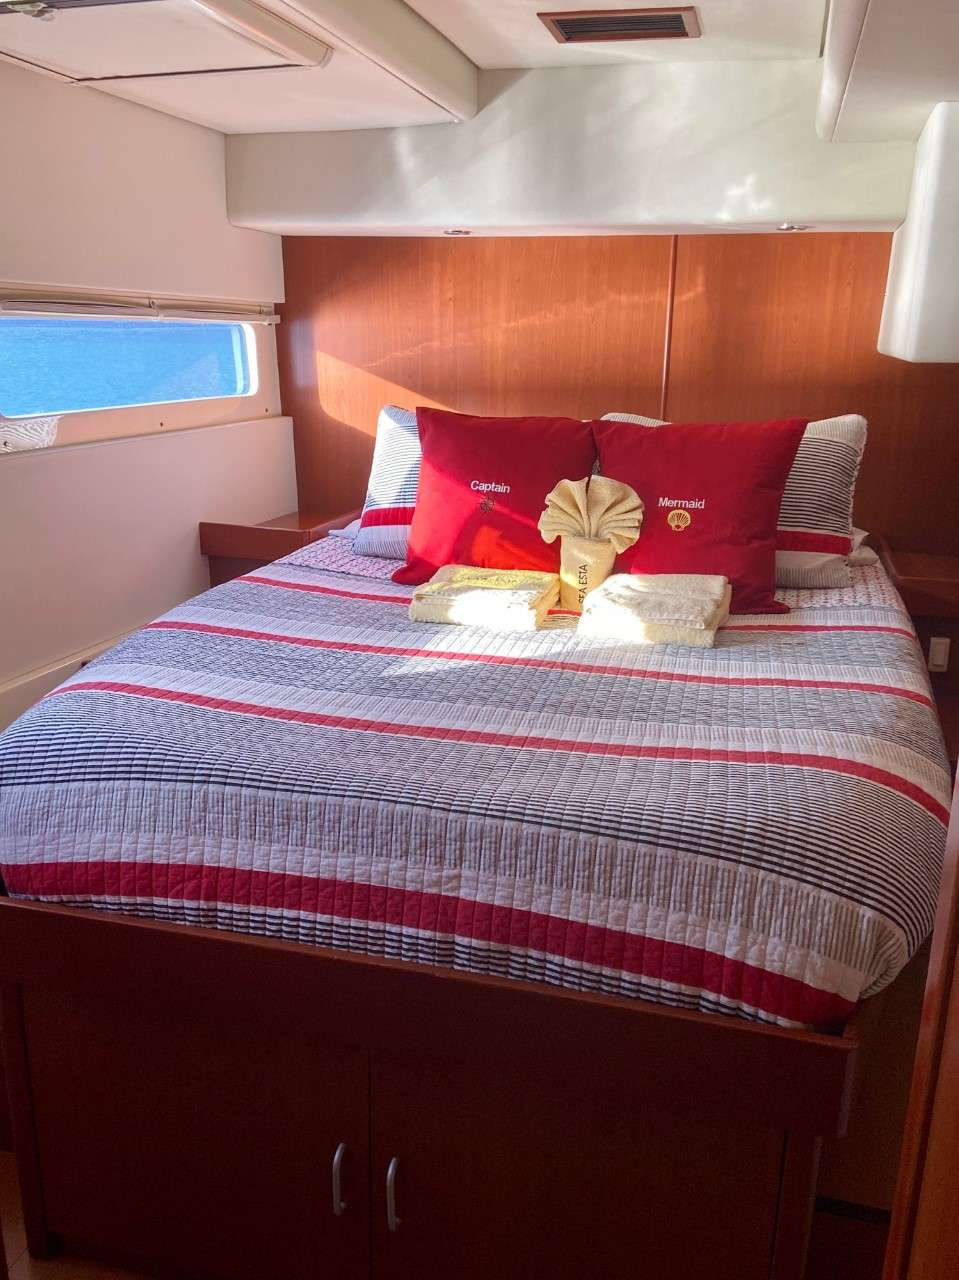 Enjoy a new degree of comfort with memory foam cooling pillows in every stateroom